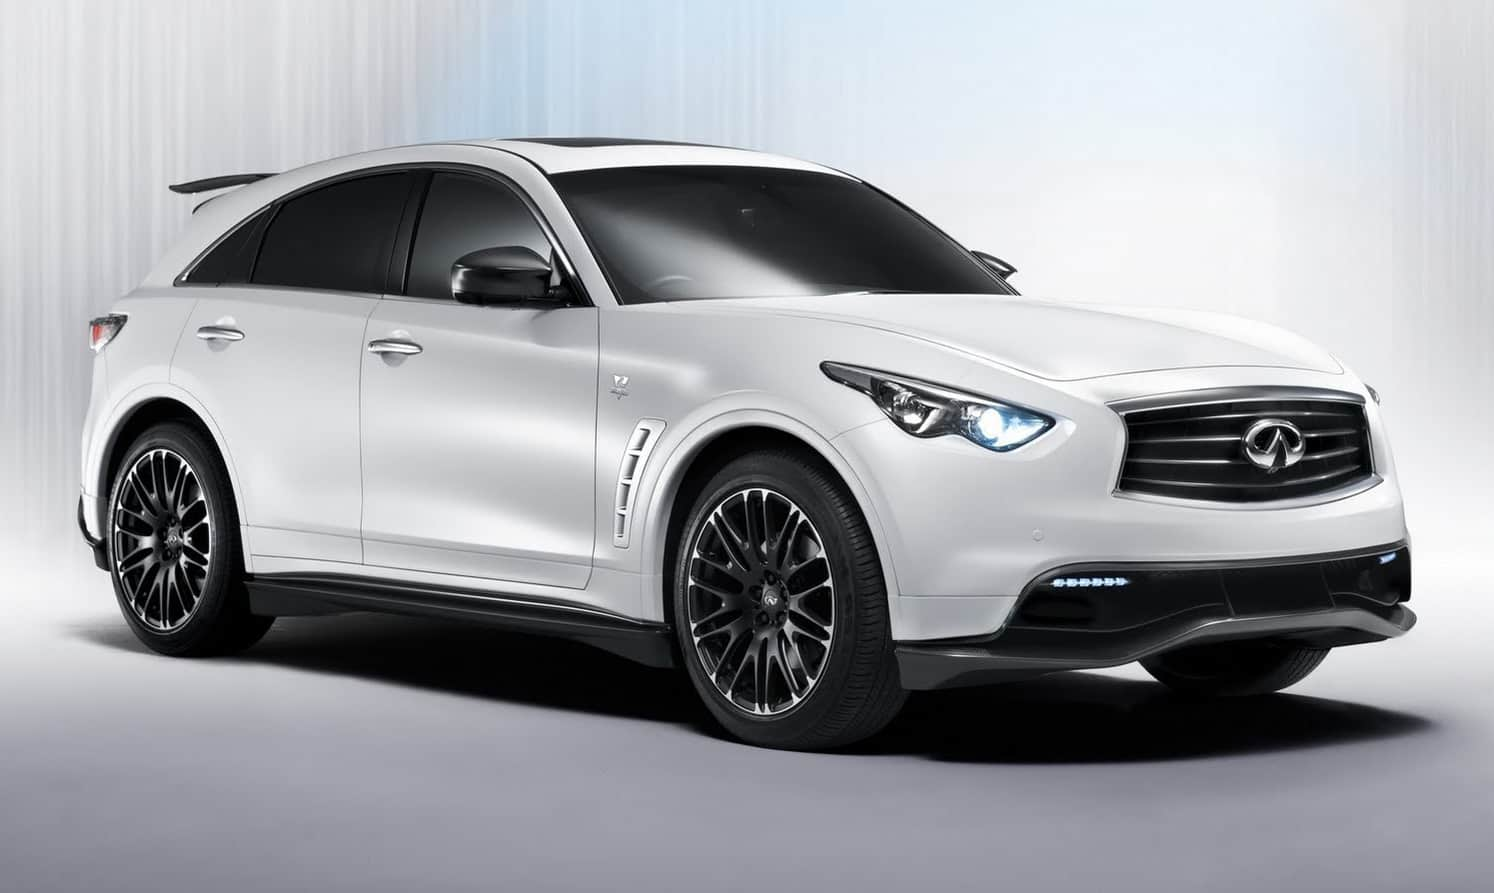 2014 infiniti fx redesign images hd cars wallpaper 2014 infiniti fx redesign images hd cars wallpaper 2014 infiniti fx redesign choice image hd cars wallpaper 2014 infiniti fx redesign image collections hd vanachro Image collections